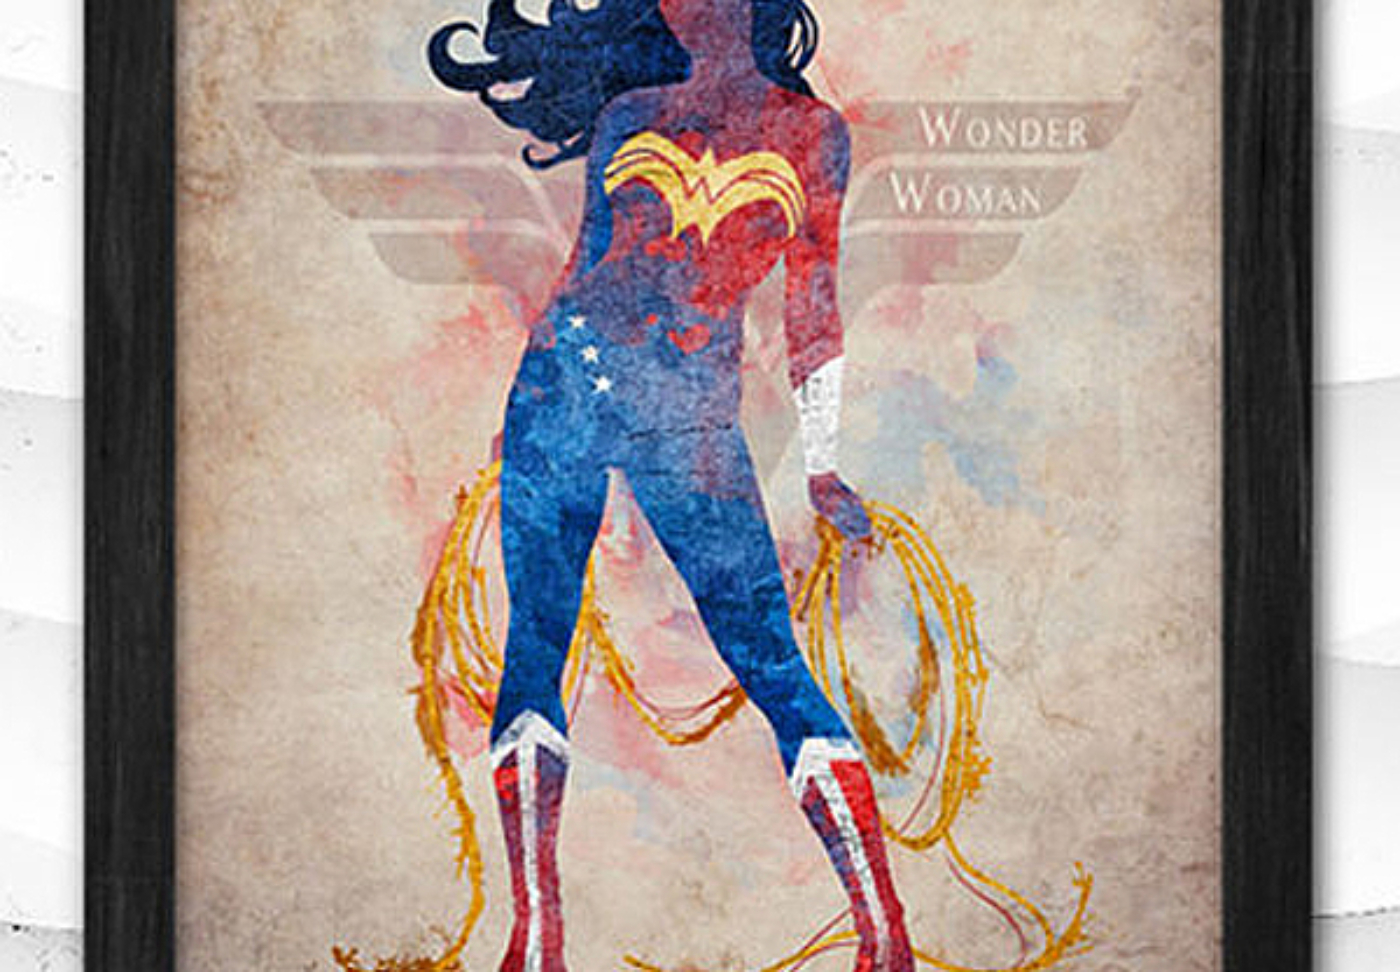 This updated Wonder Woman print is an awesome addition to a Wonder Woman party and is nice enough to hang in a bedroom, media room, or play room after the party is over. Classy Wonder Woman Birthday Party Decor   Halfpint Design